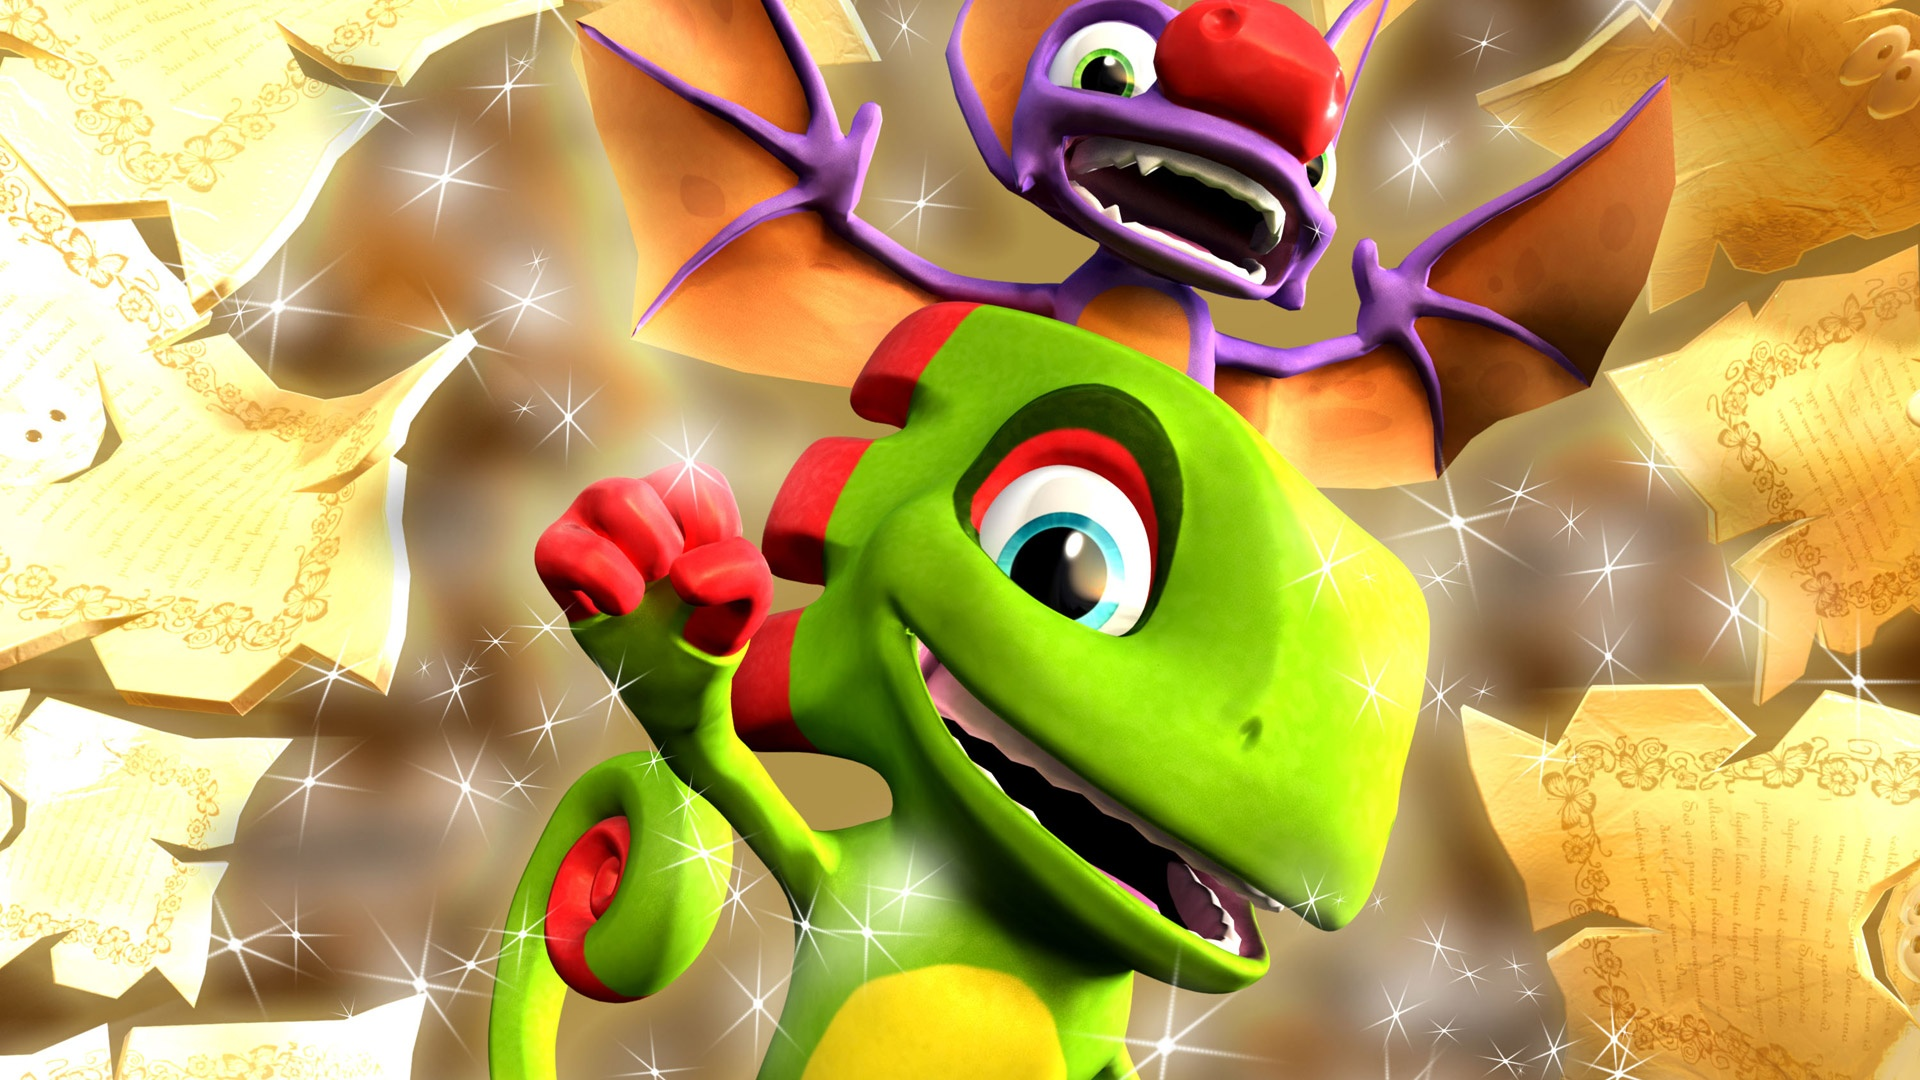 Yooka-Layee by Playtonic Games